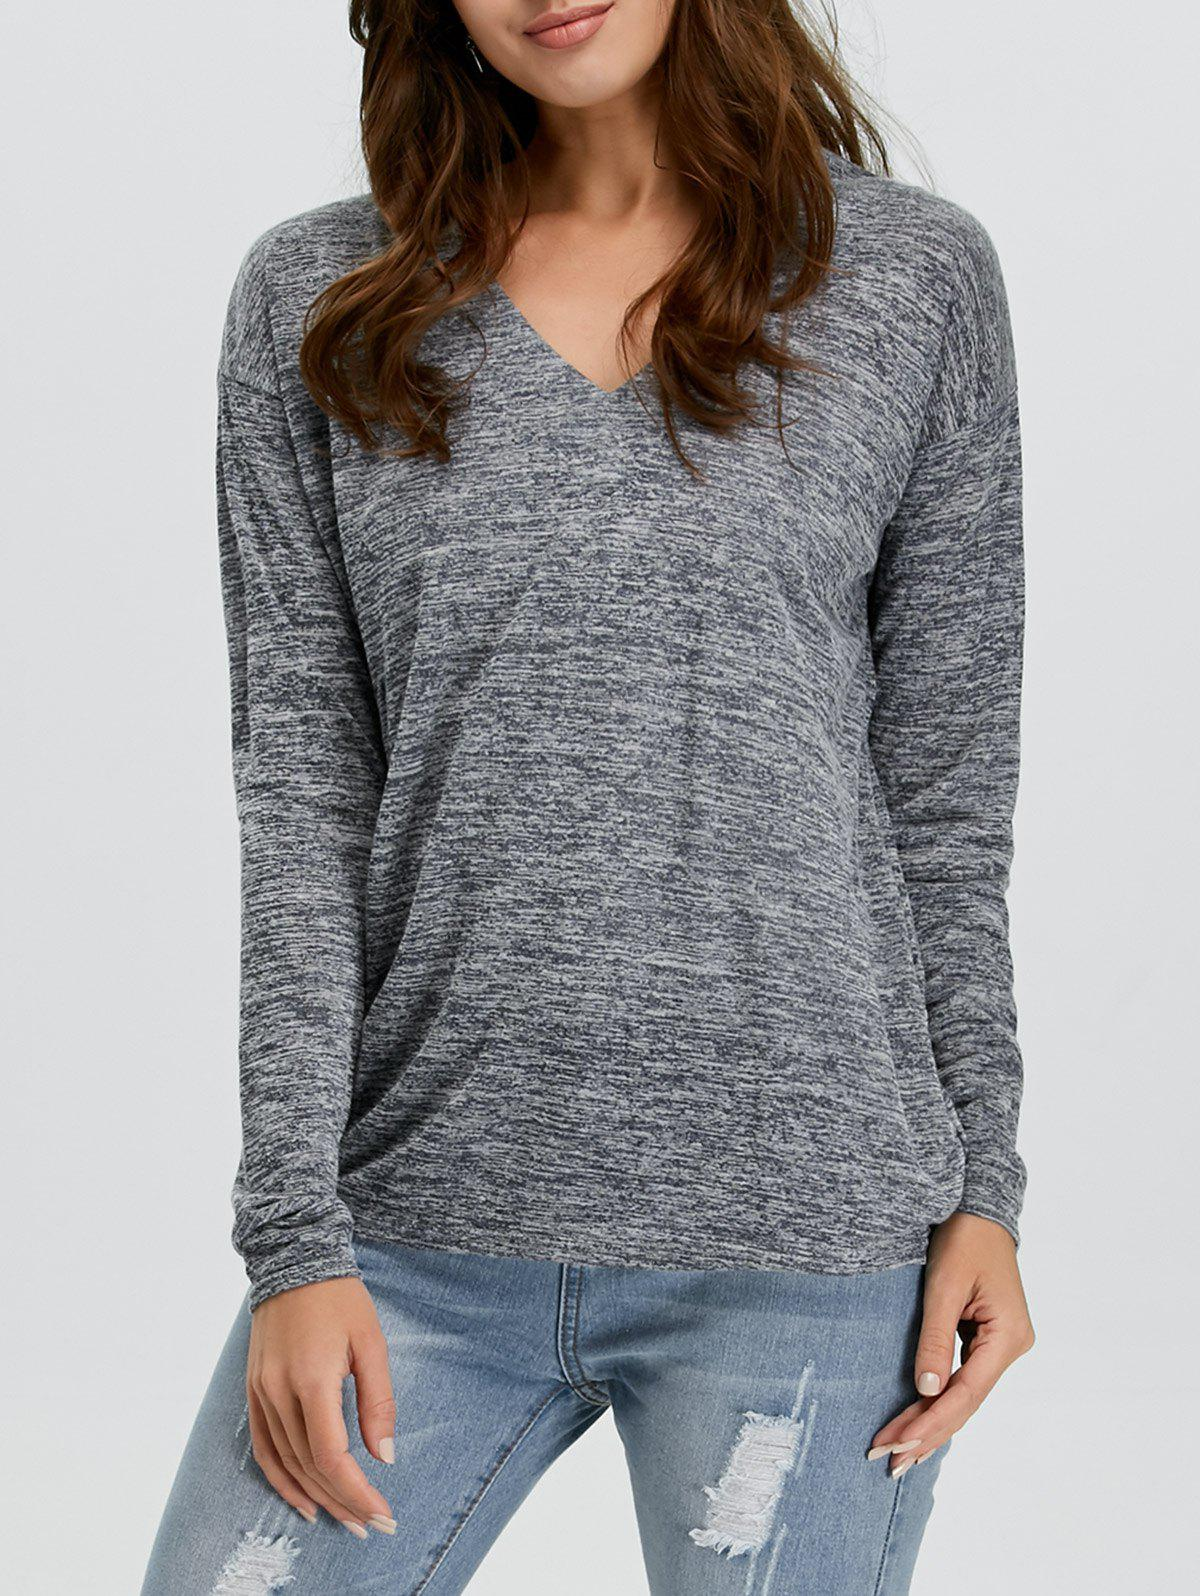 V-Neck Long Sleeve Knitted Tee - GRAY S